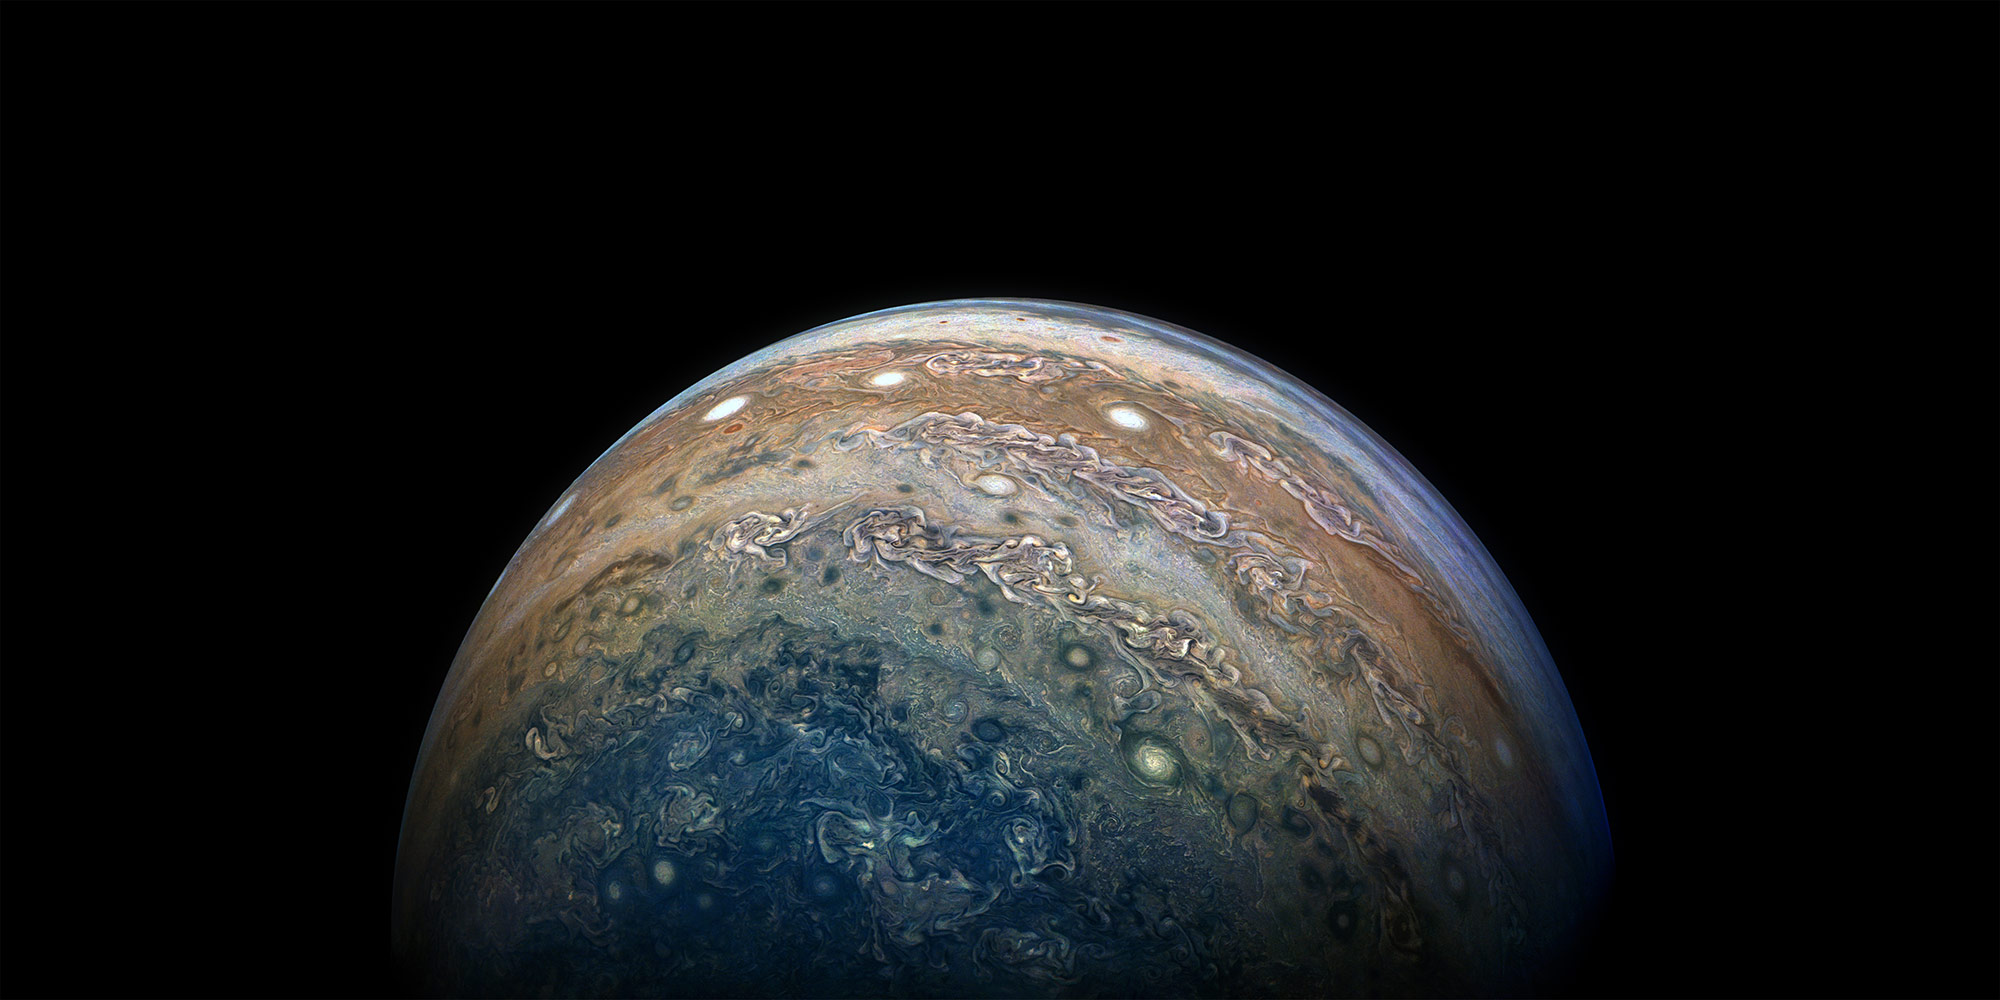 Jupiter Planet Images